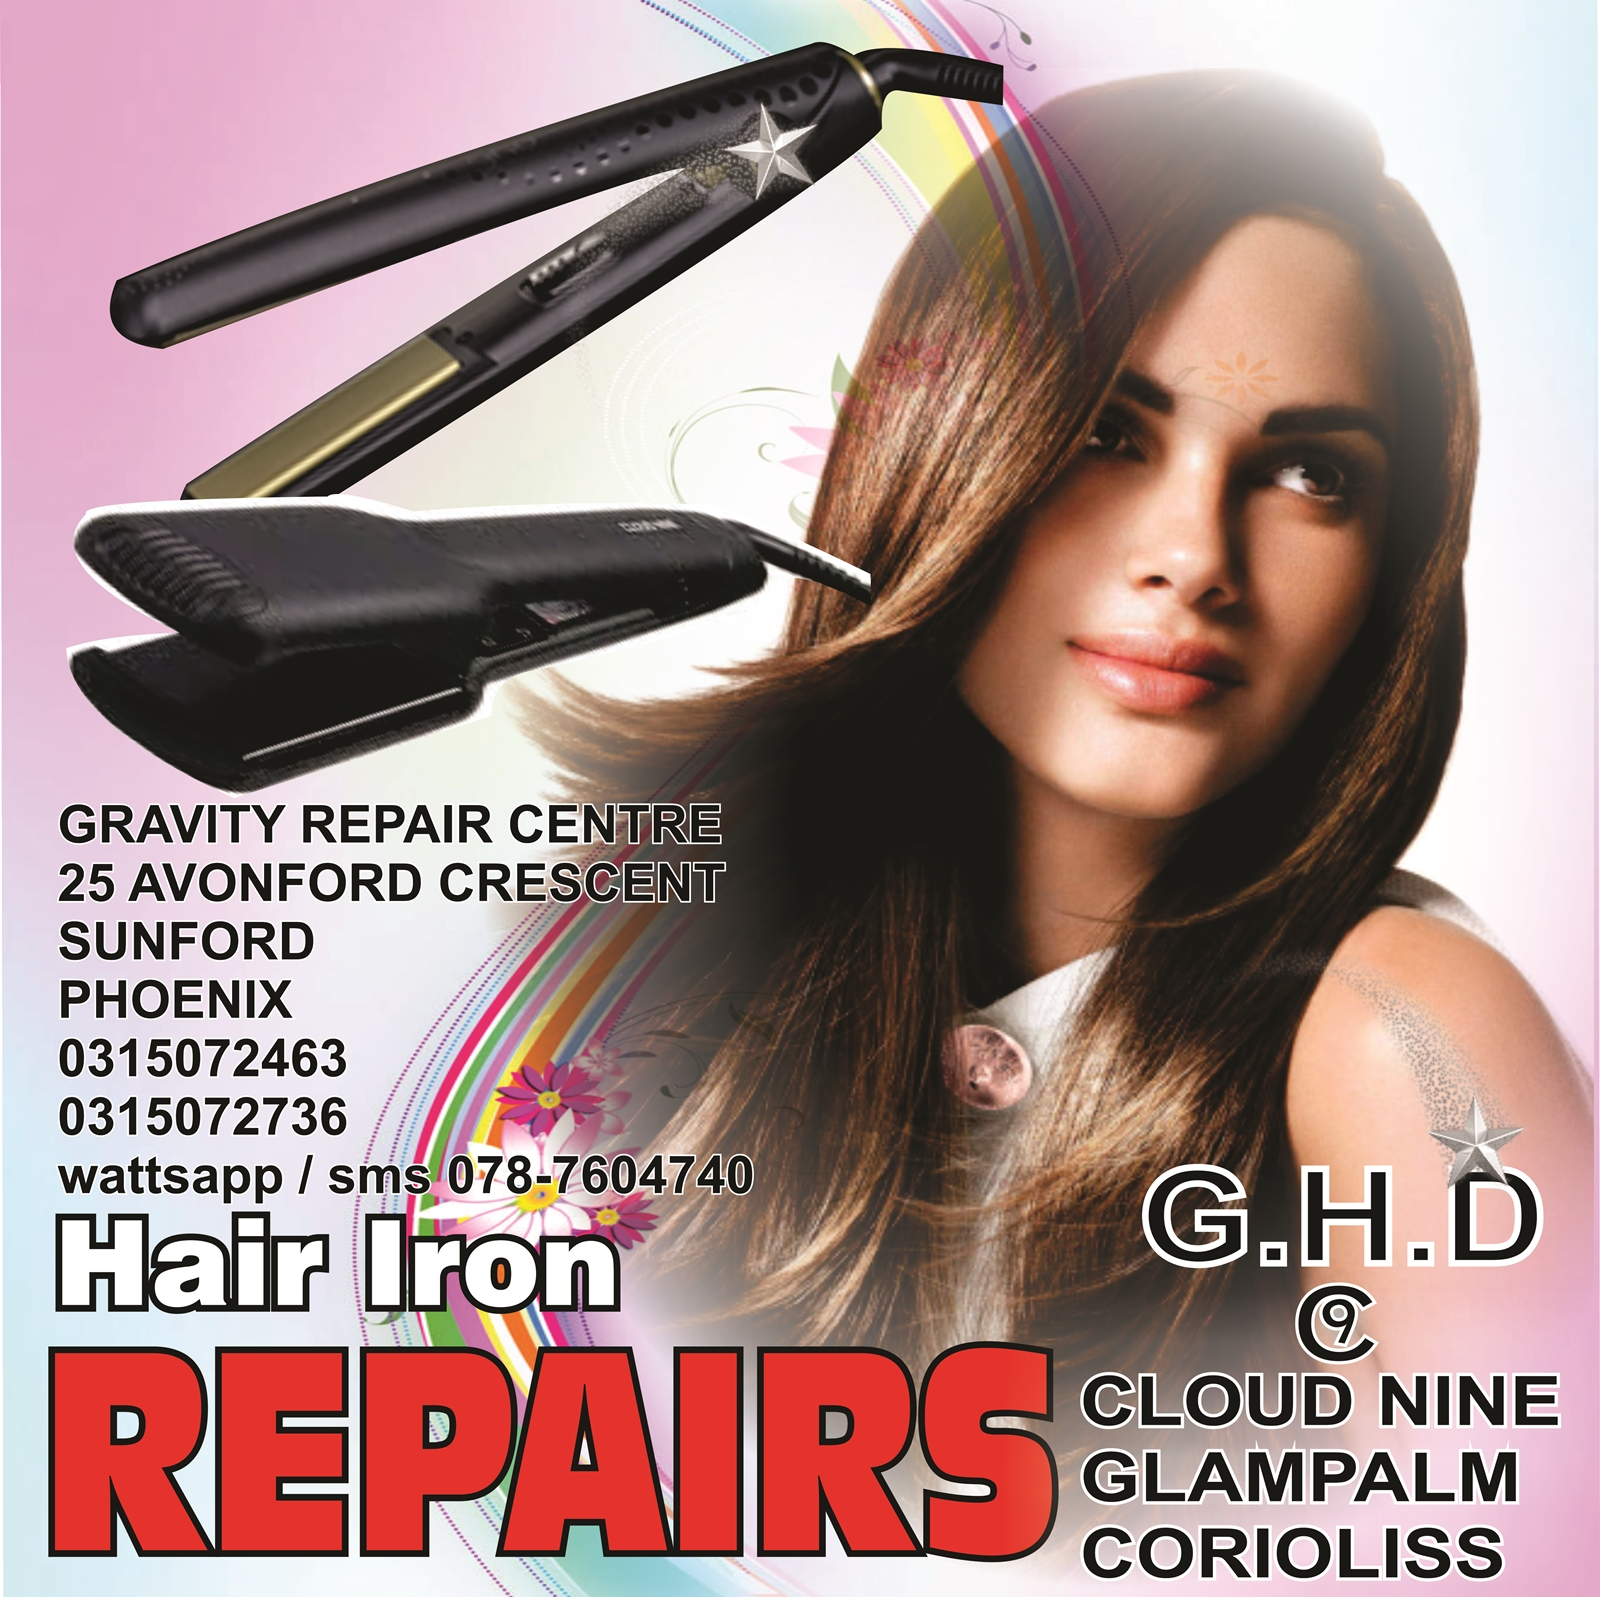 GHD REPAIRS CLOUD 9 REPAIRS GLAMPALM HAIR IRON REPAIRS CLOUDNINE HAIR IRON  REPAIRS BHE HAIR IRONS SPECIALIST veaudrey hair iron repair agents gravity 0787604740